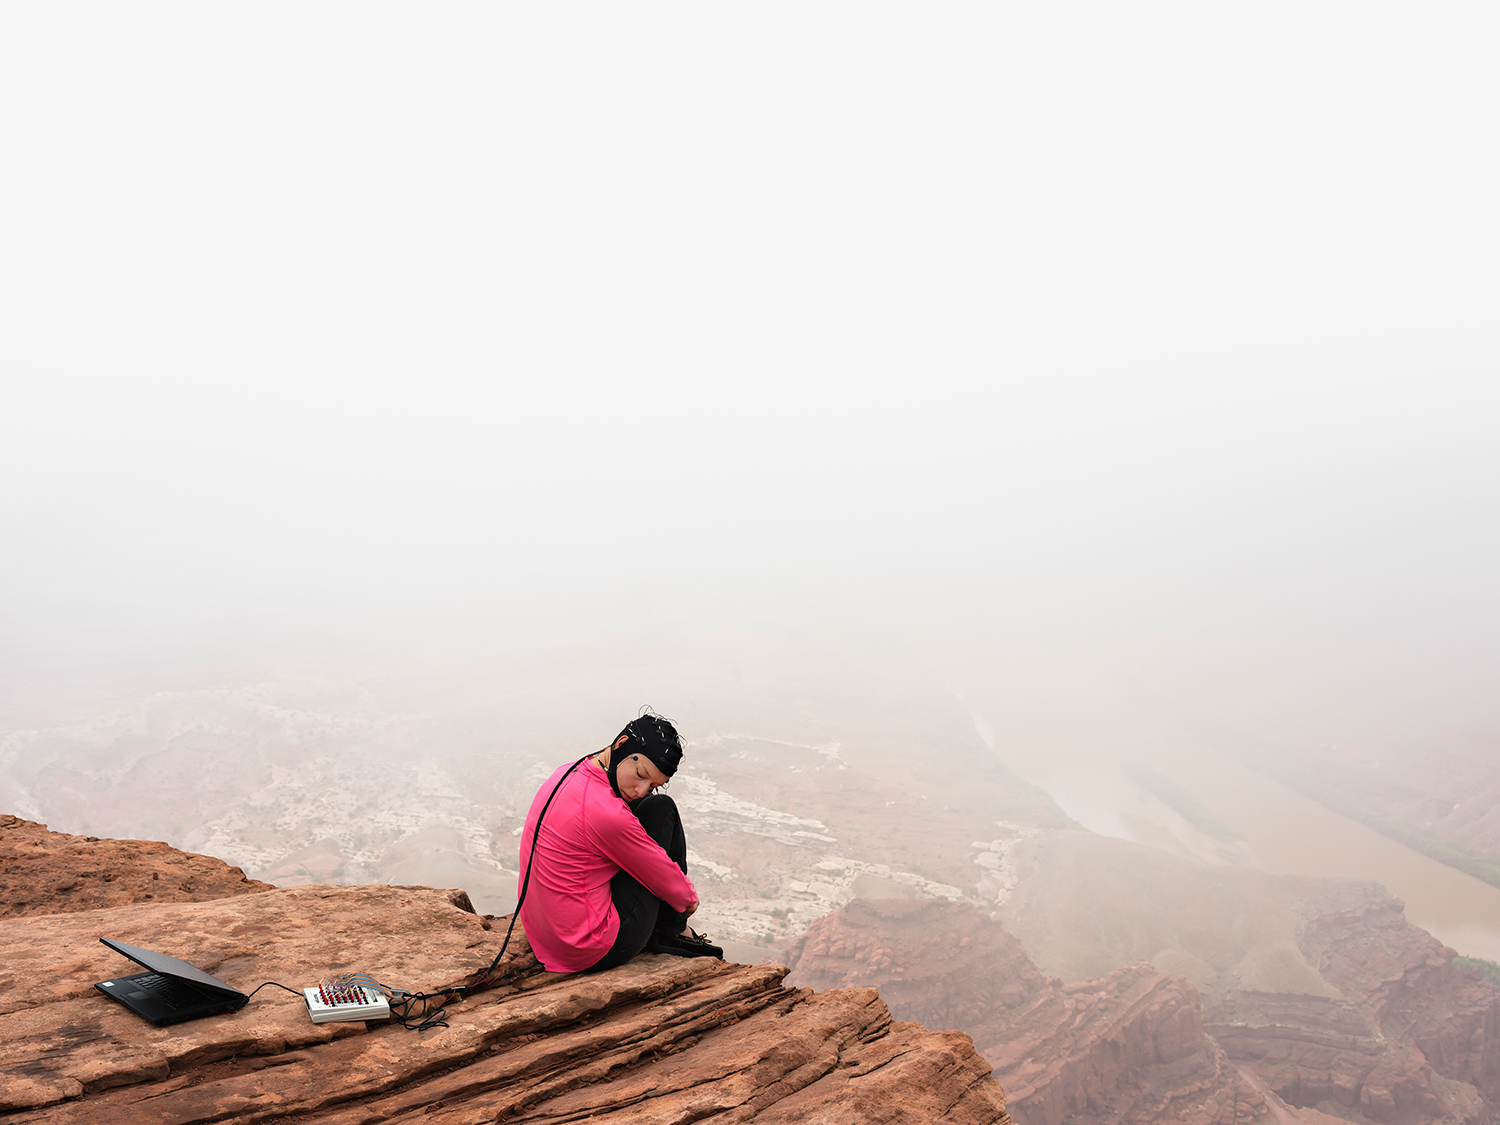 """Lucas Foglia,  Kate in an EEG Study of Cognition in the Wild , Strayer Lab, University of Utah, Utah 2015. Courtesy of Michael Hoppen Gallery. (""""On Earth - Imaging, Technology and the Natural World"""" exhibition to be on display at Jimei this Fall)."""